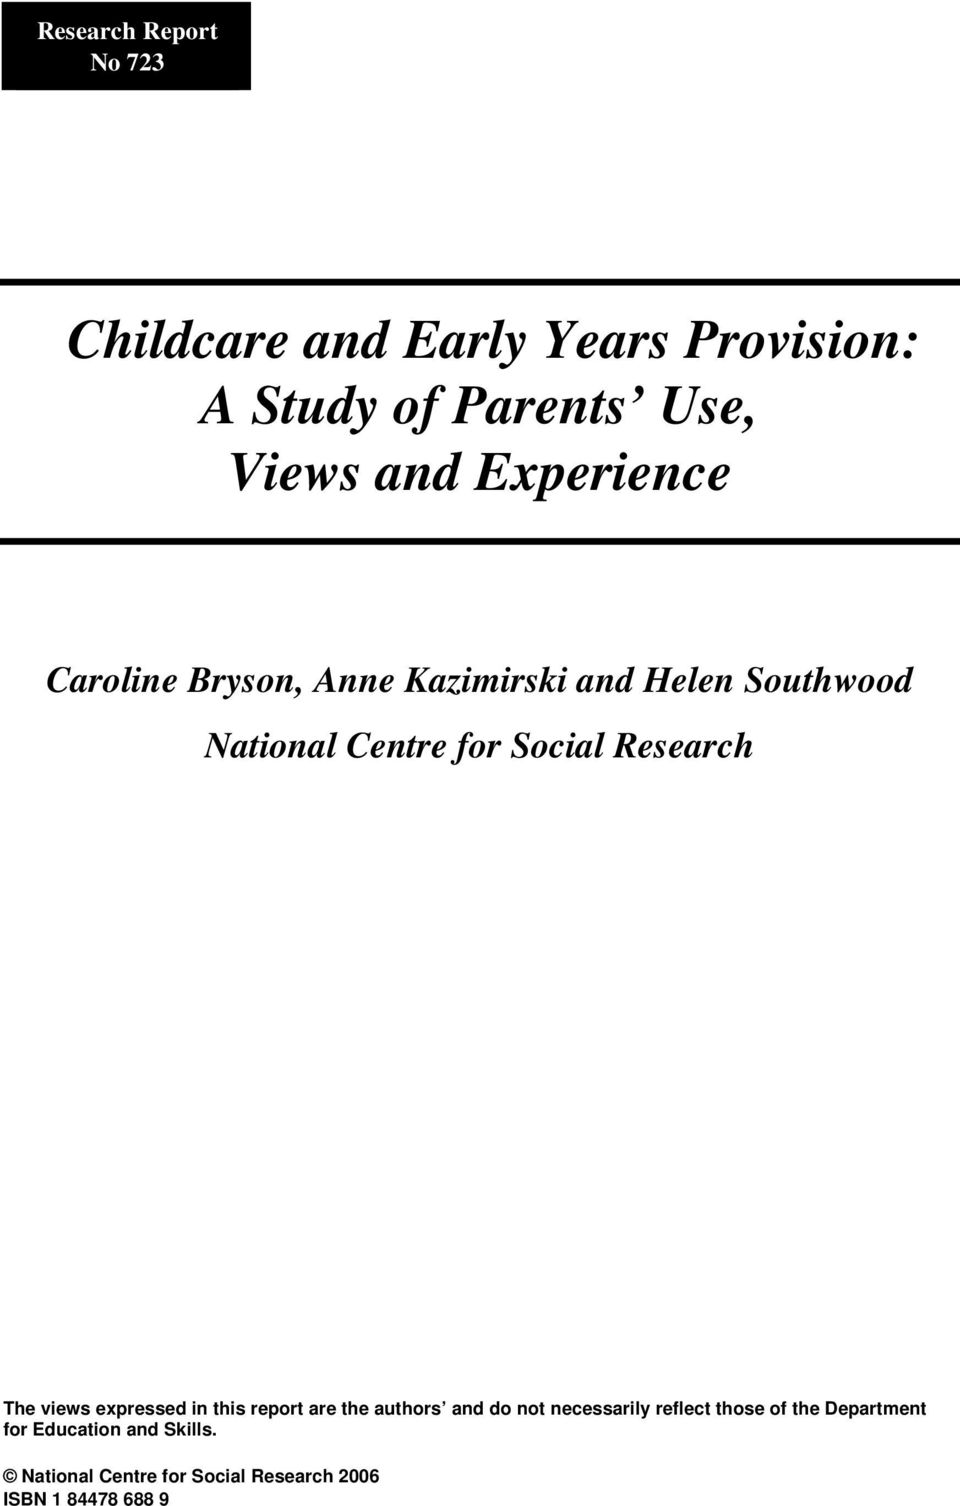 Research The views expressed in this report are the authors and do not necessarily reflect those